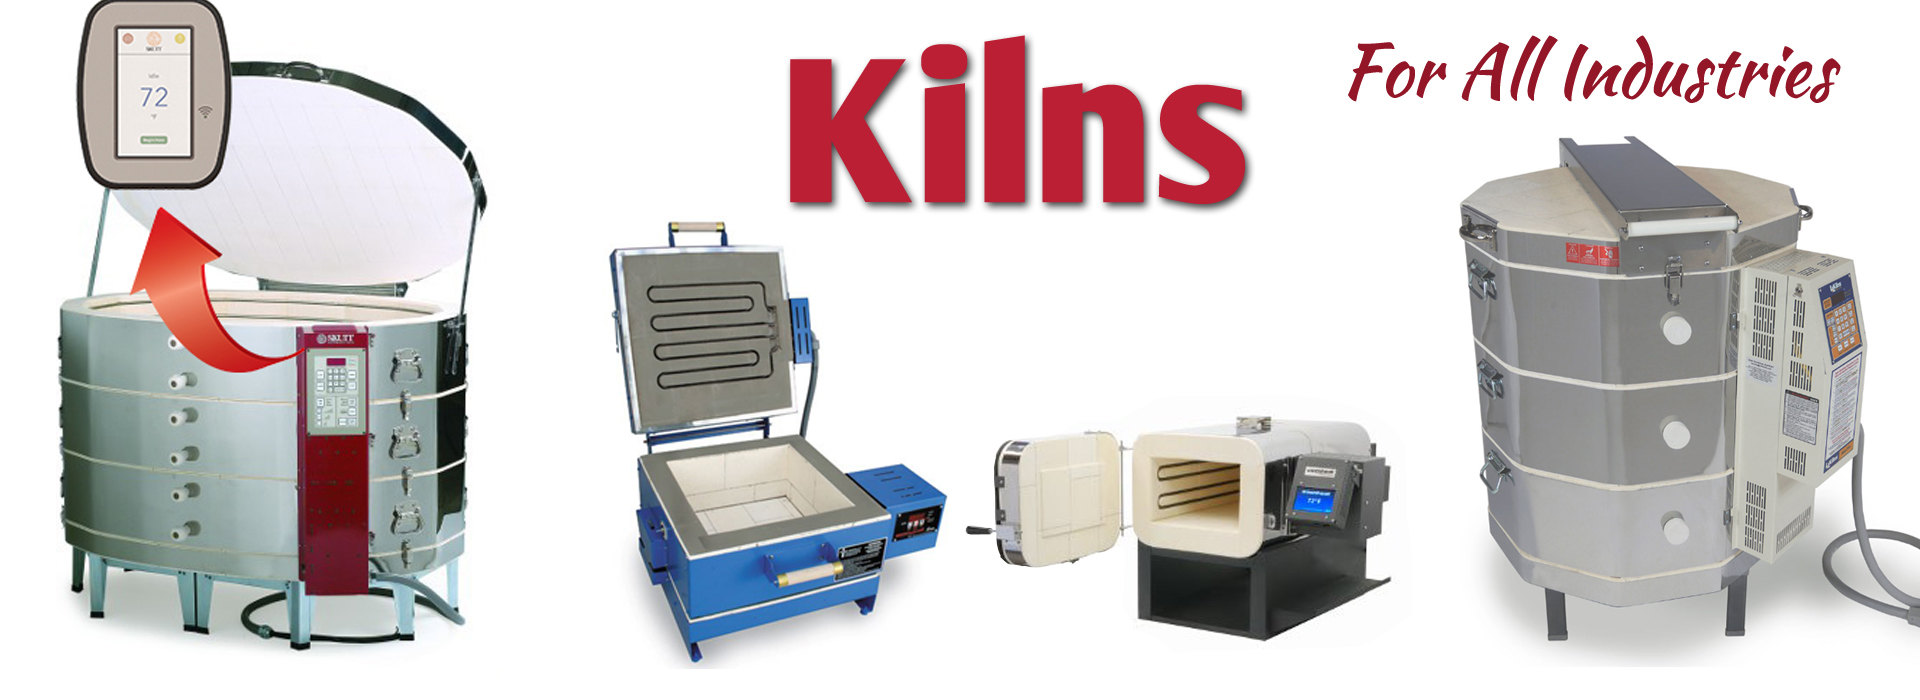 Discounted Kilns